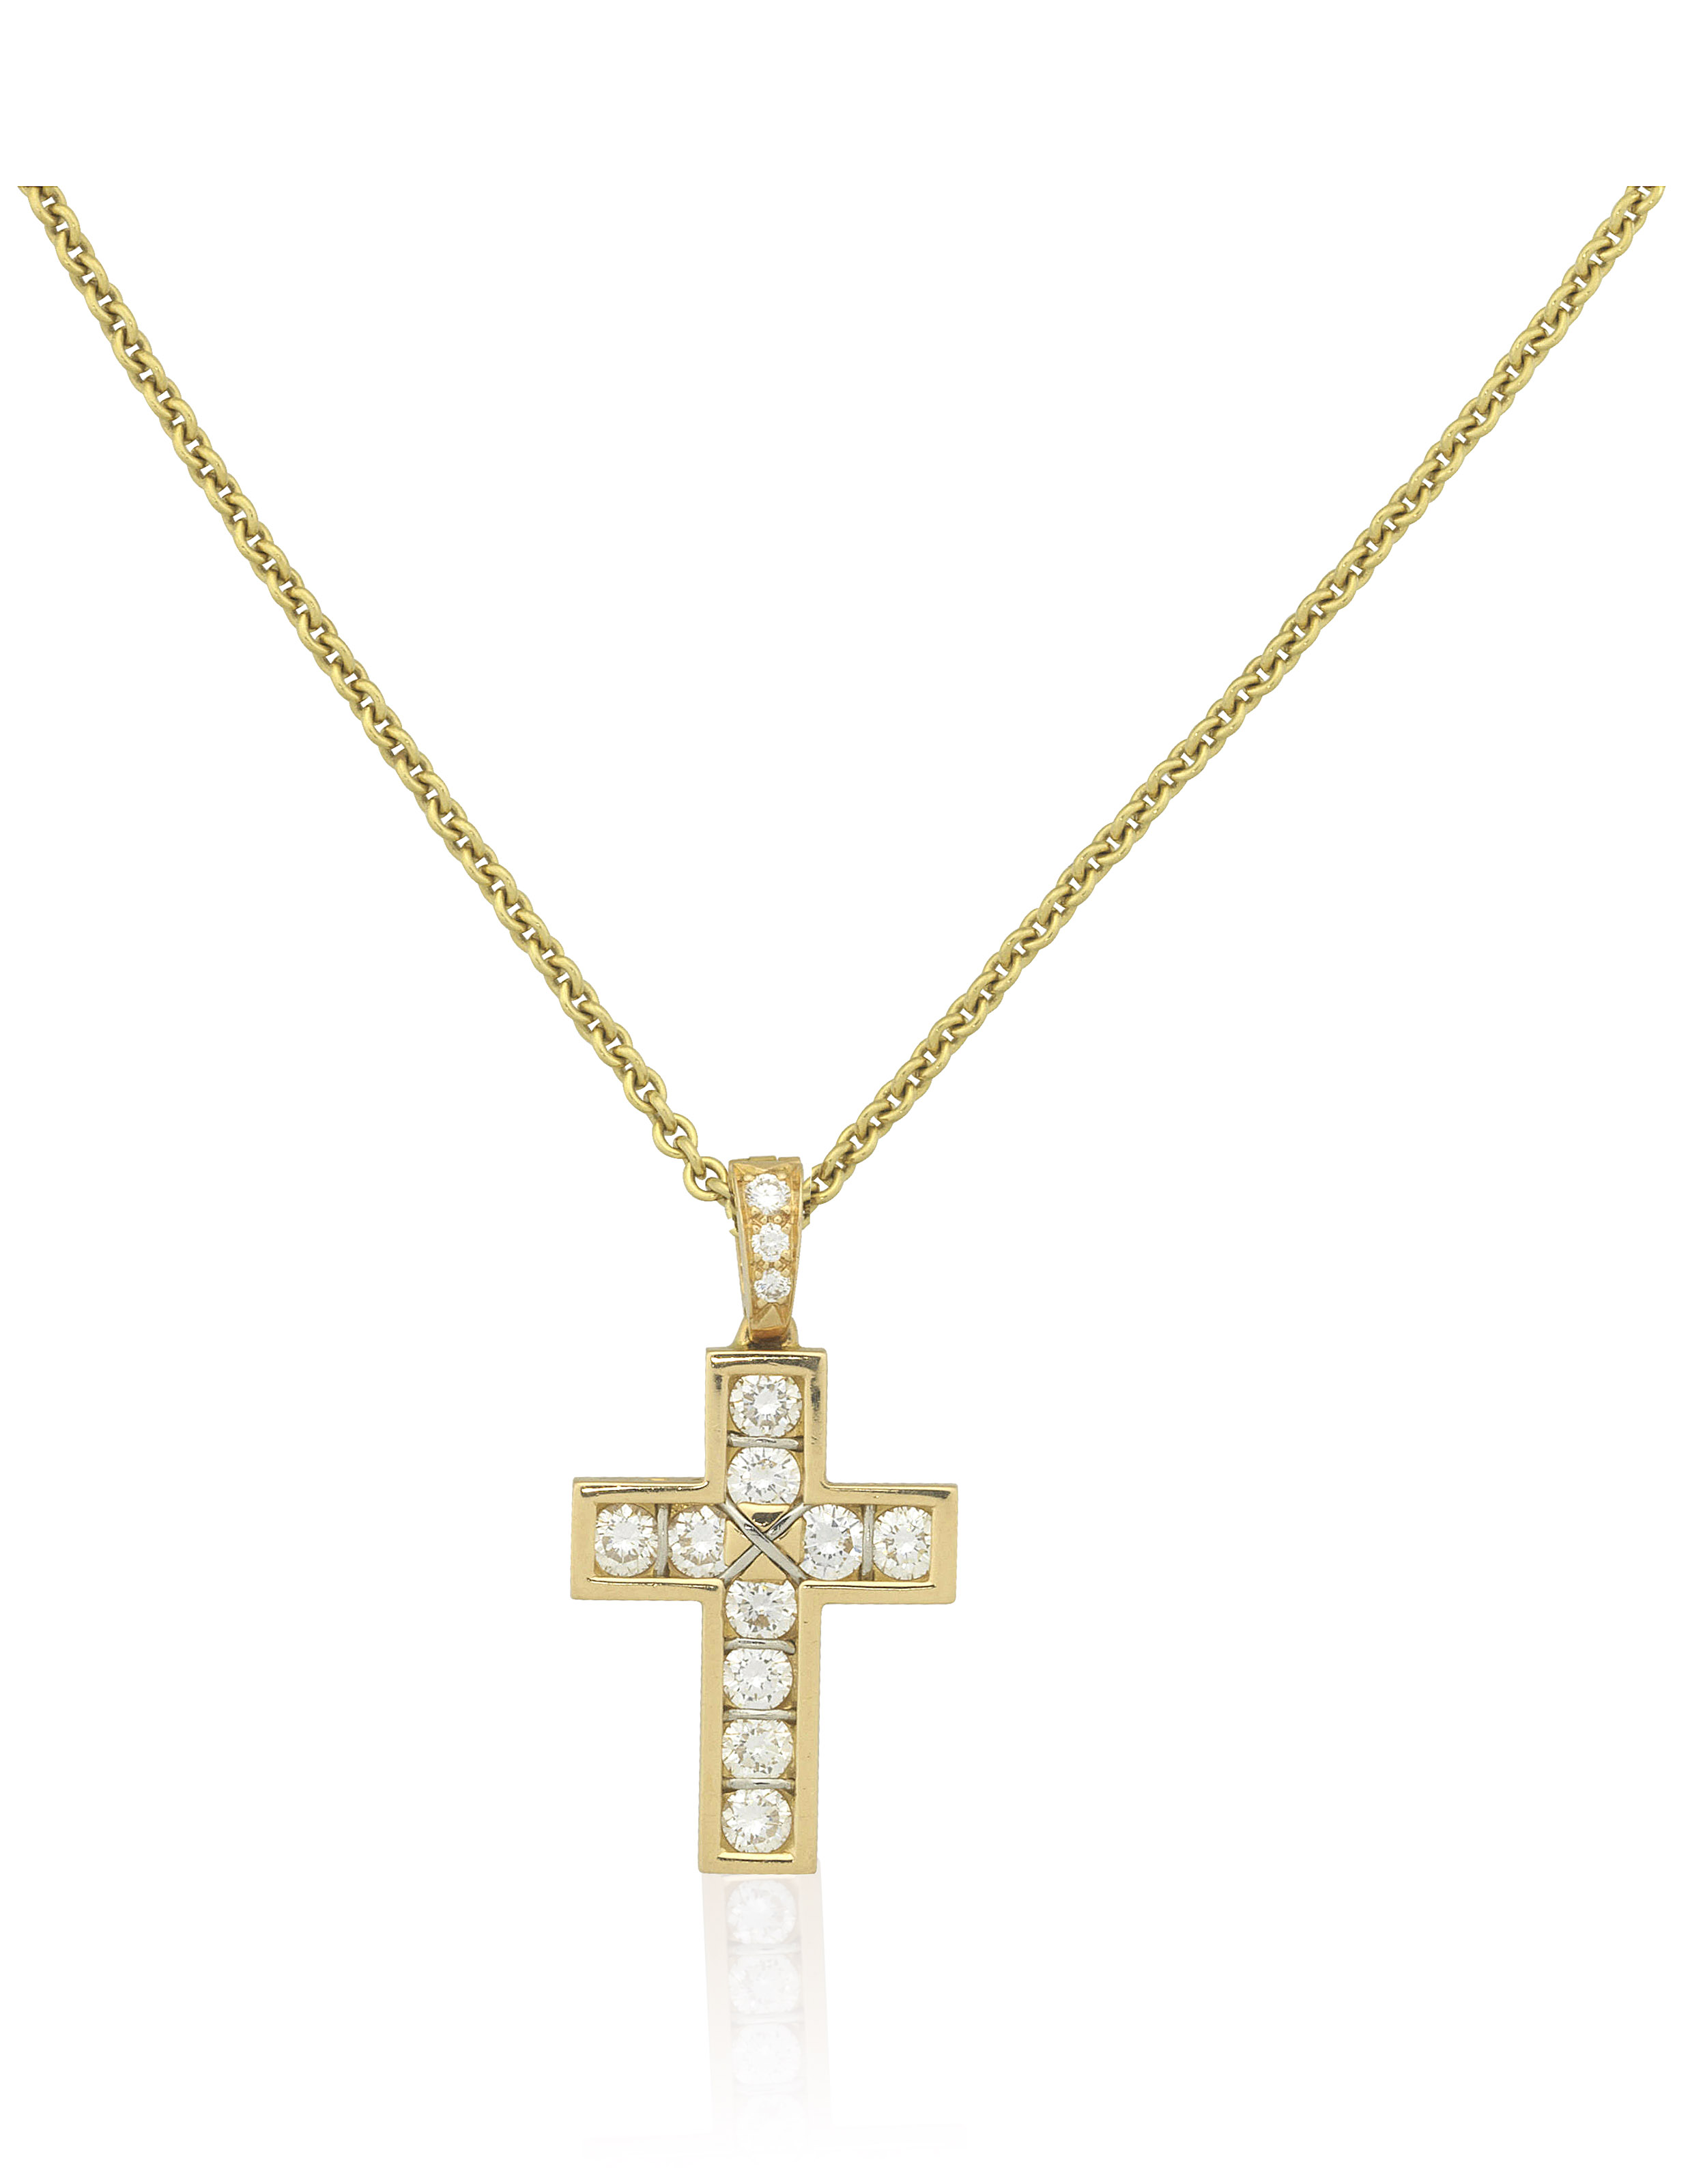 Cartier diamond cross pendant christies cartier diamond cross pendant cartier diamond cross pendant aloadofball Images